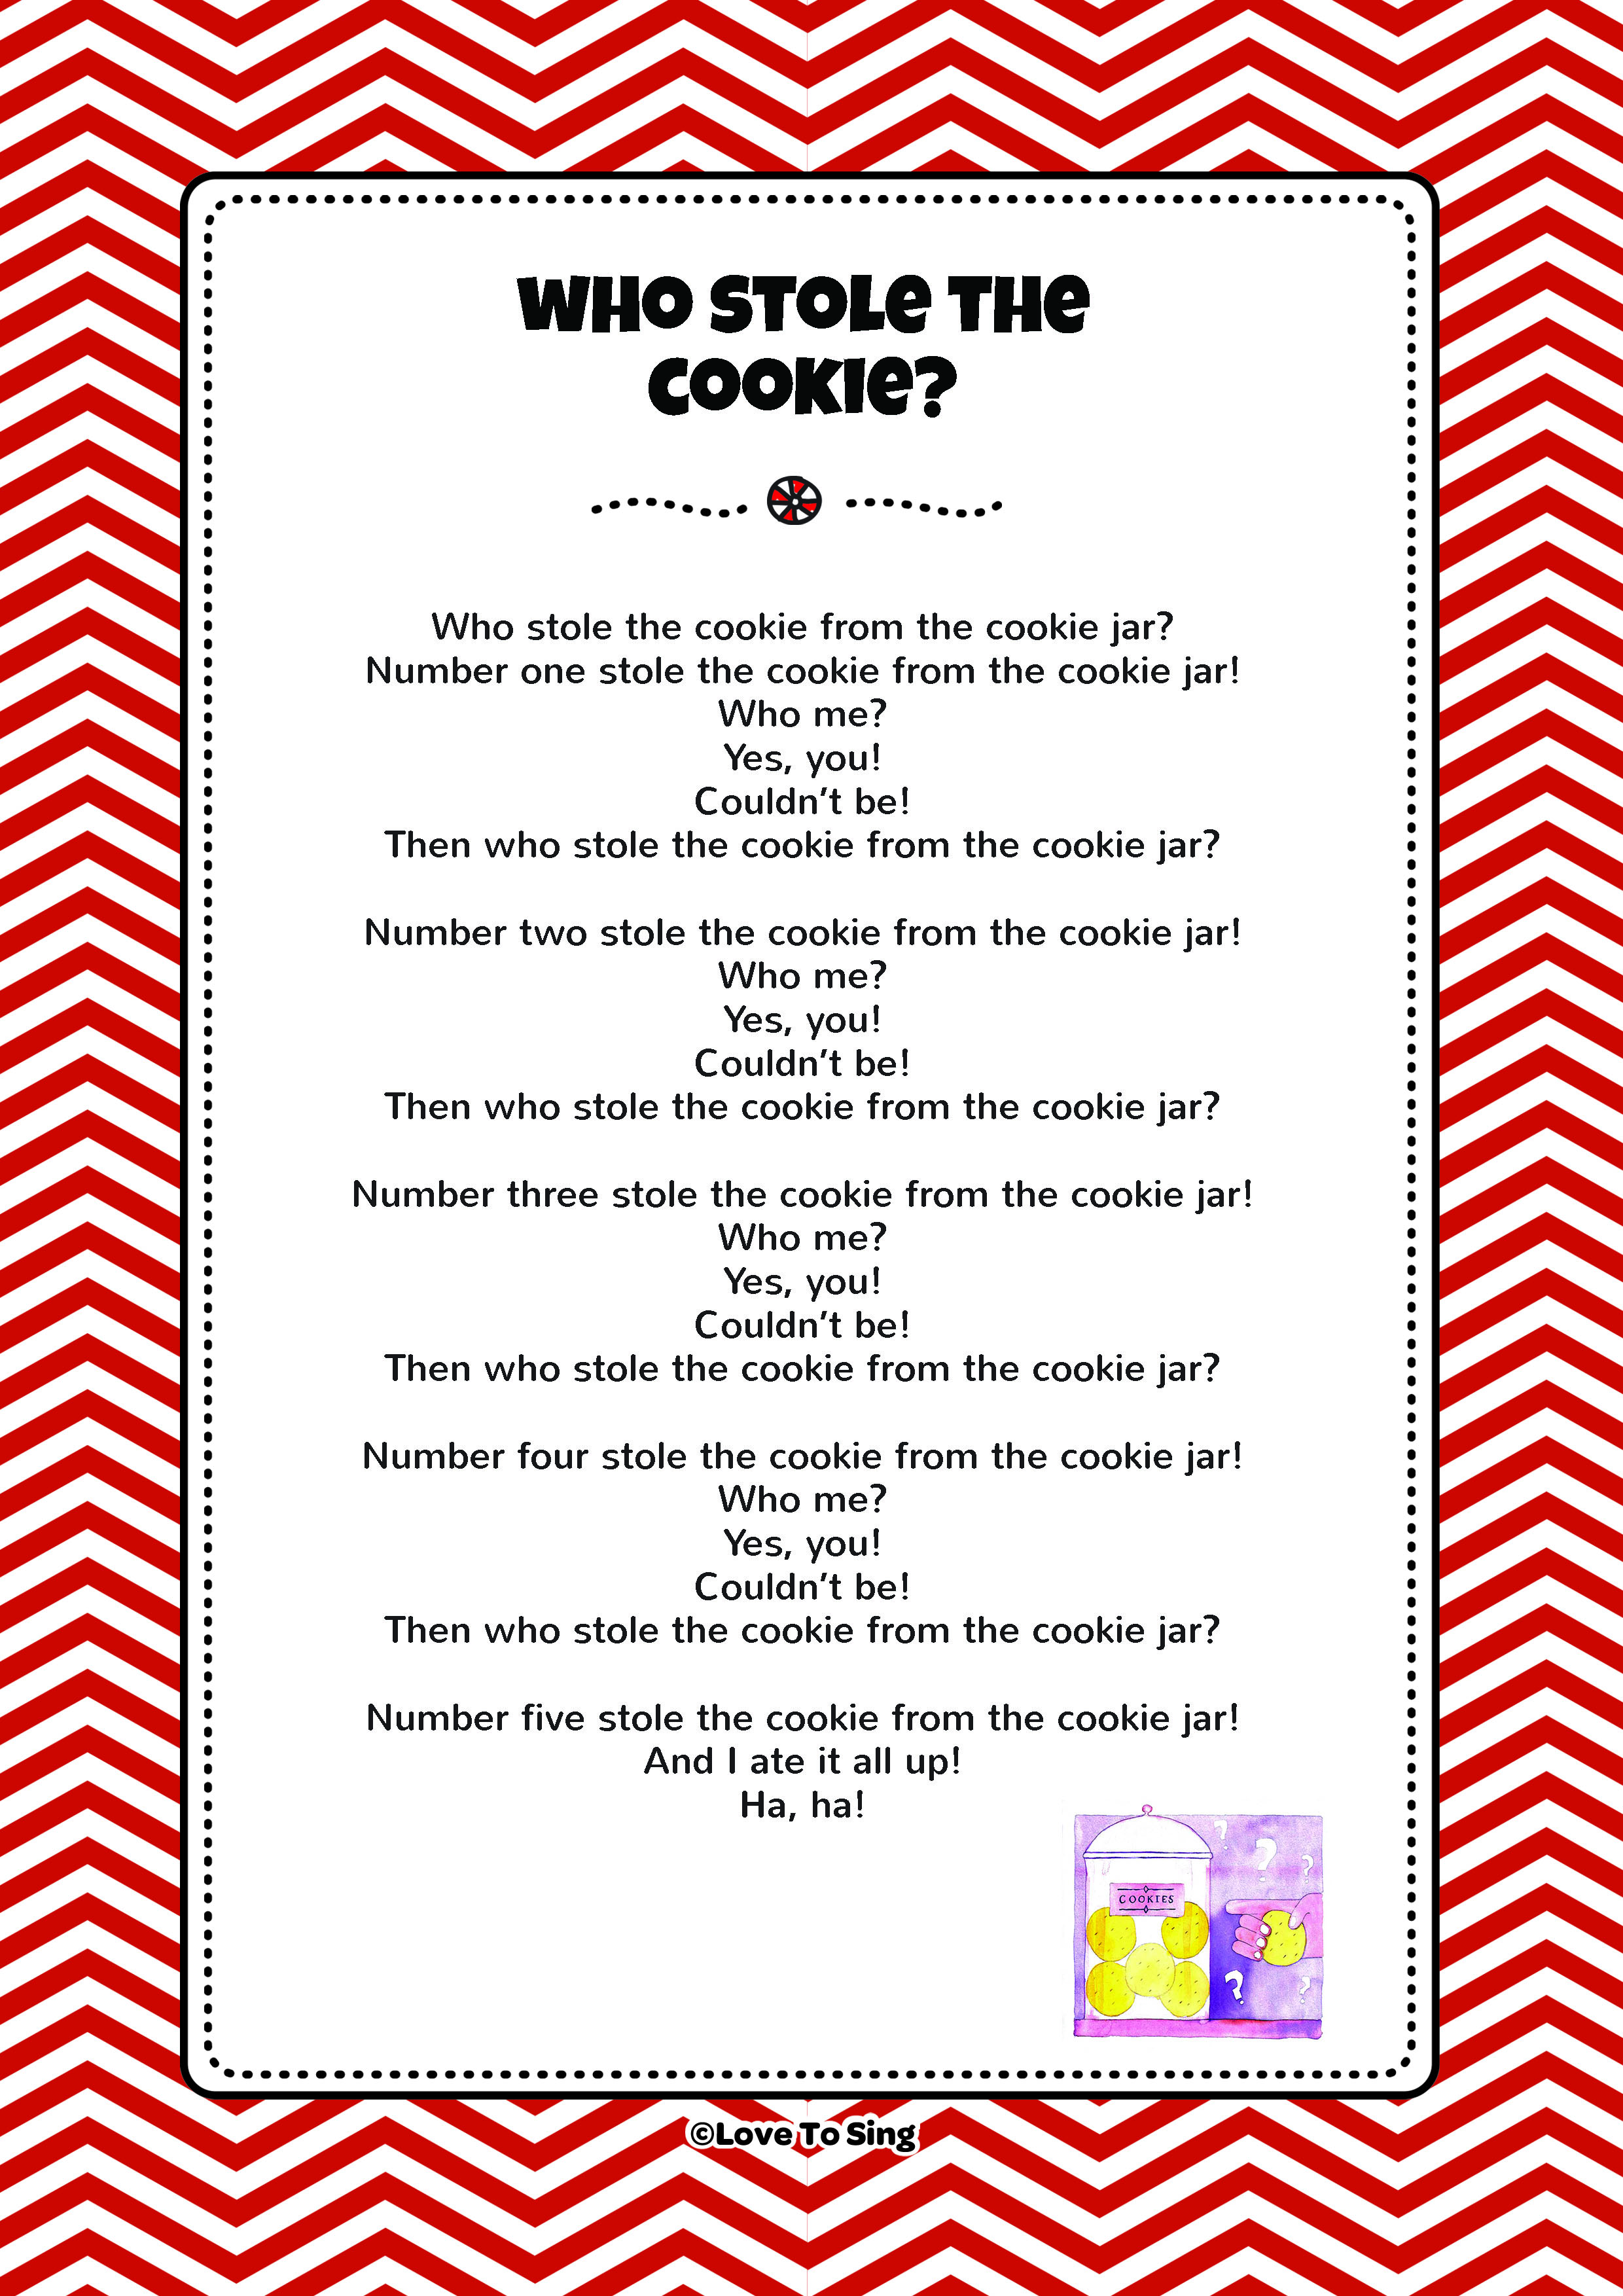 Who Stole The Cookie Kids Video Song With Free Lyrics